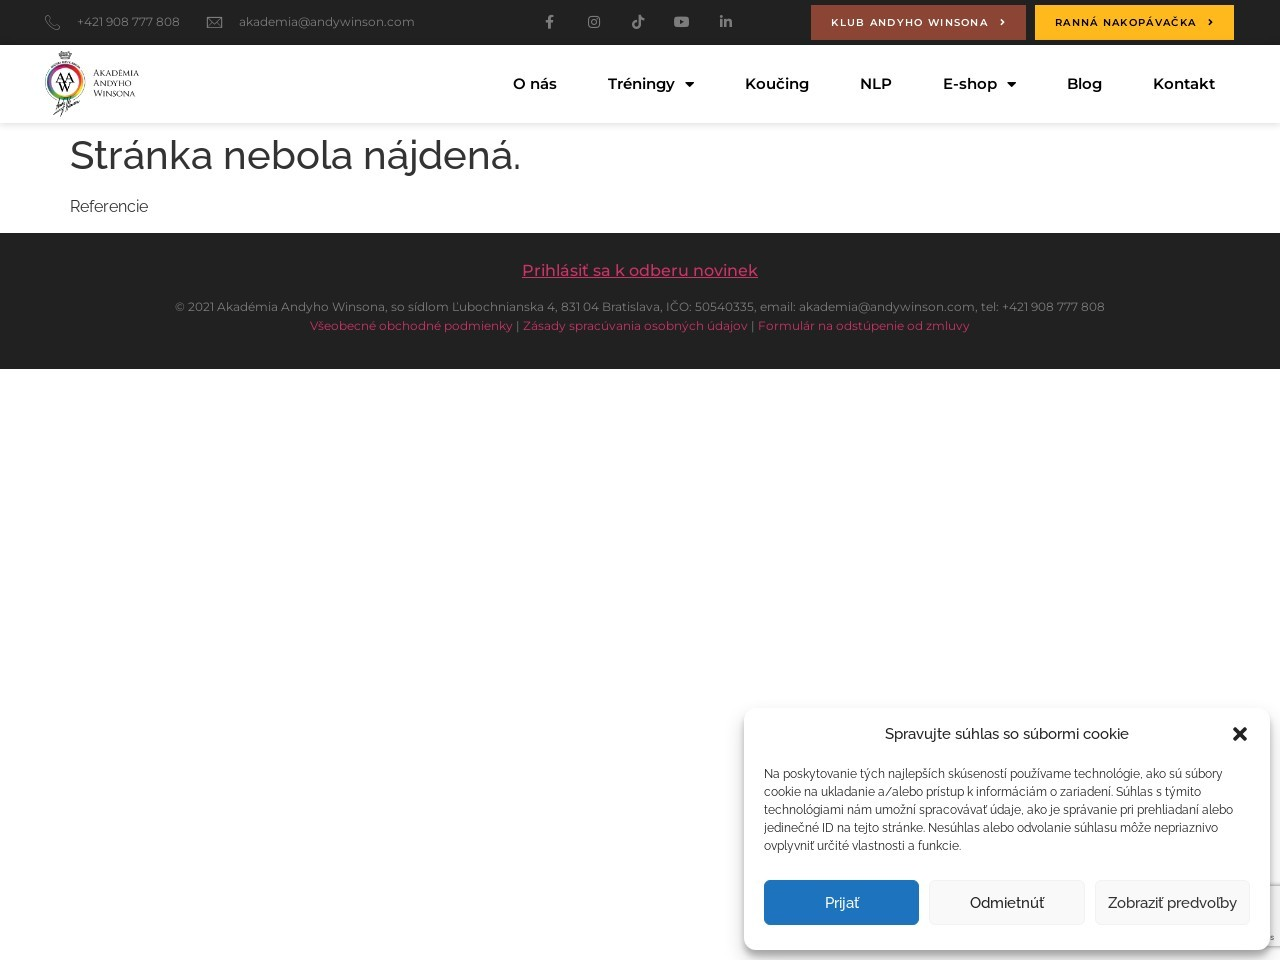 Andy Winson